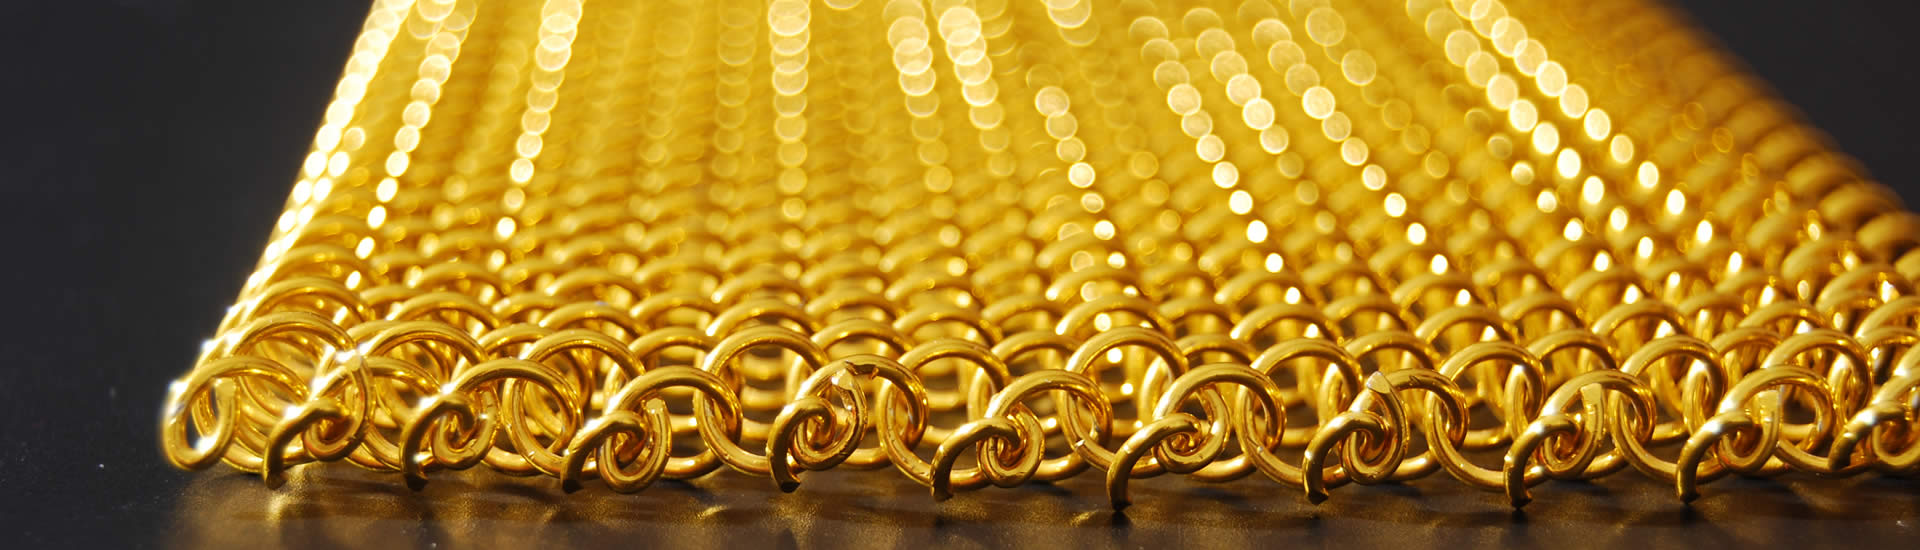 Details about edge of golden metal coil drapery.